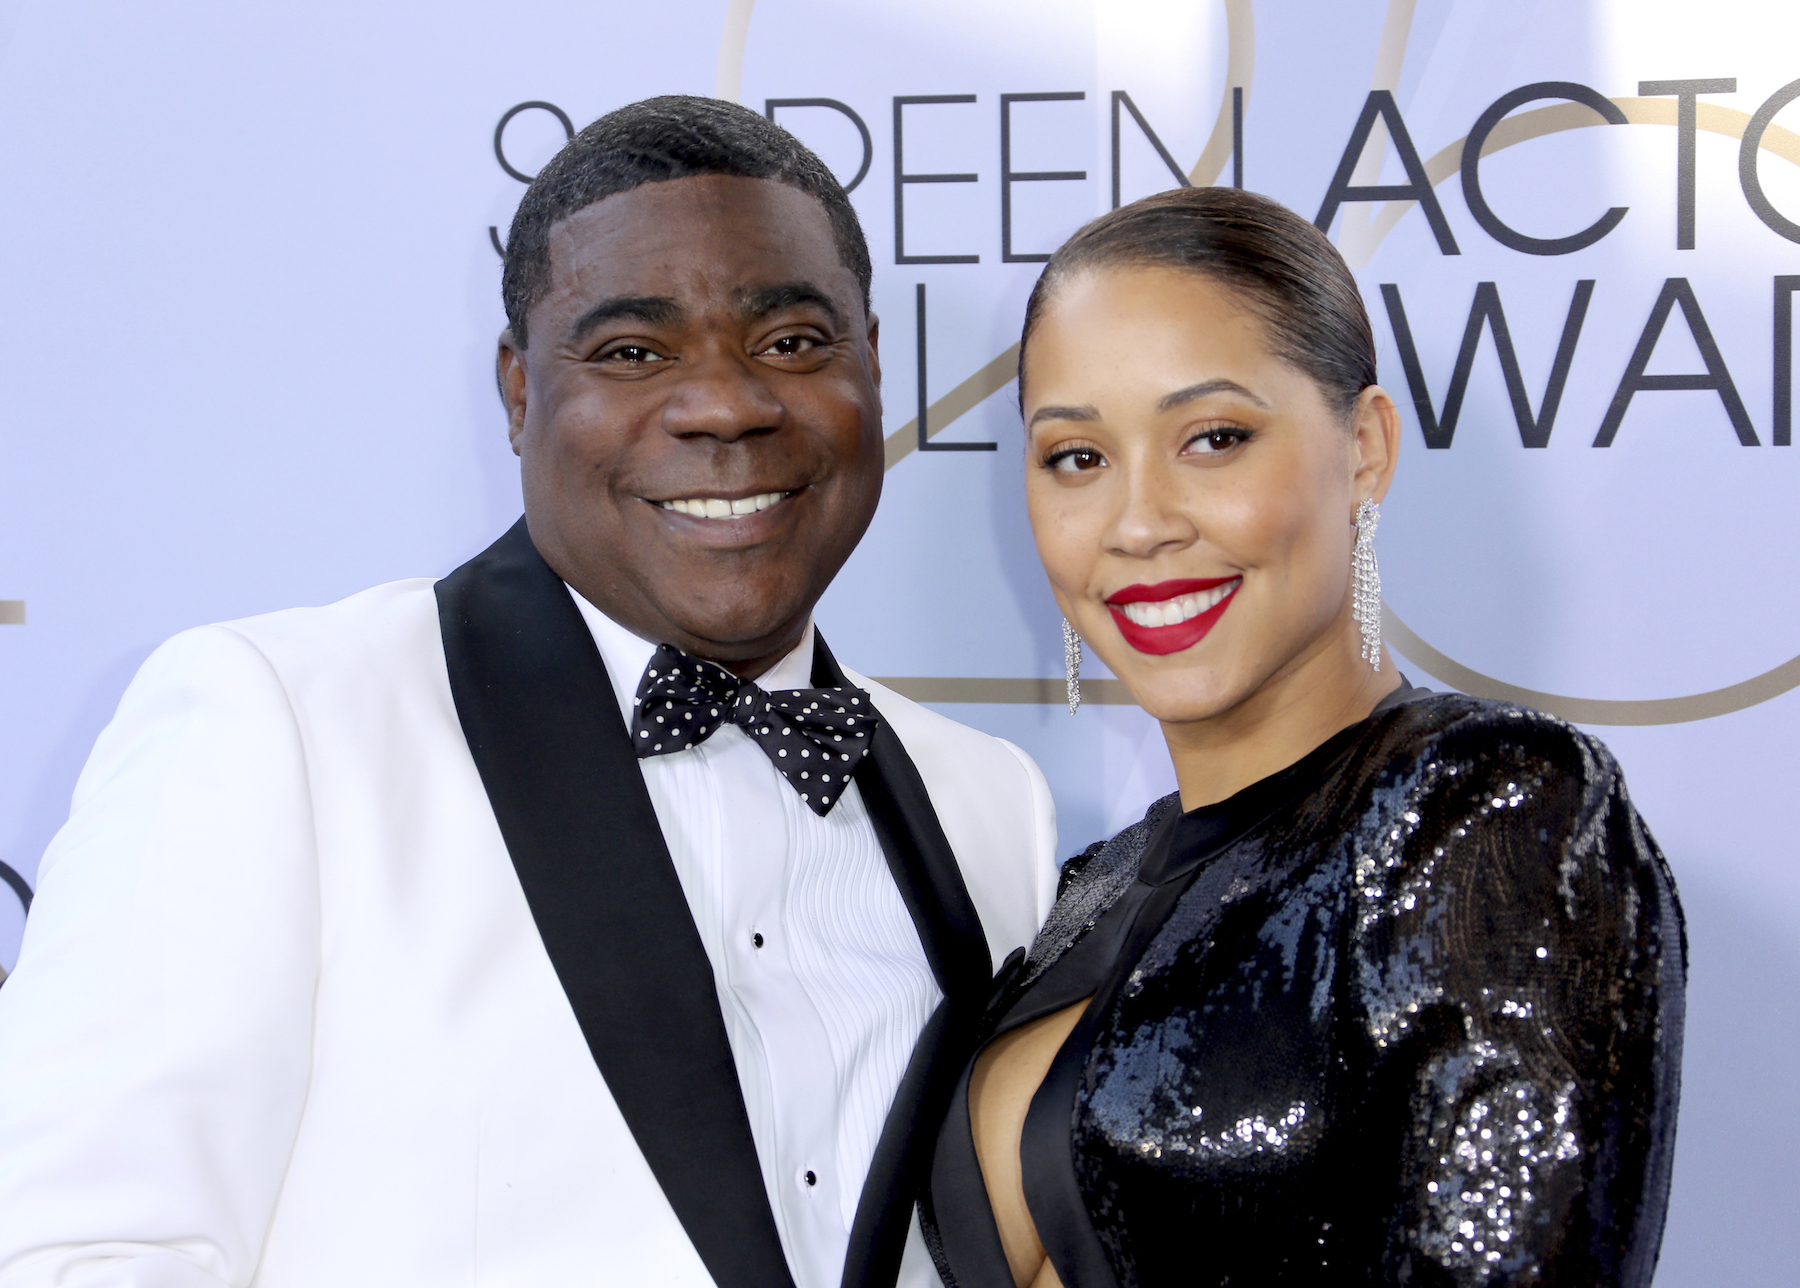 "<div class=""meta image-caption""><div class=""origin-logo origin-image ap""><span>AP</span></div><span class=""caption-text"">Tracy Morgan, left, and Megan Wollover arrive at the 25th annual Screen Actors Guild Awards at the Shrine Auditorium & Expo Hall on Sunday, Jan. 27, 2019, in Los Angeles. (Willy Sanjuan/Invision/AP)</span></div>"